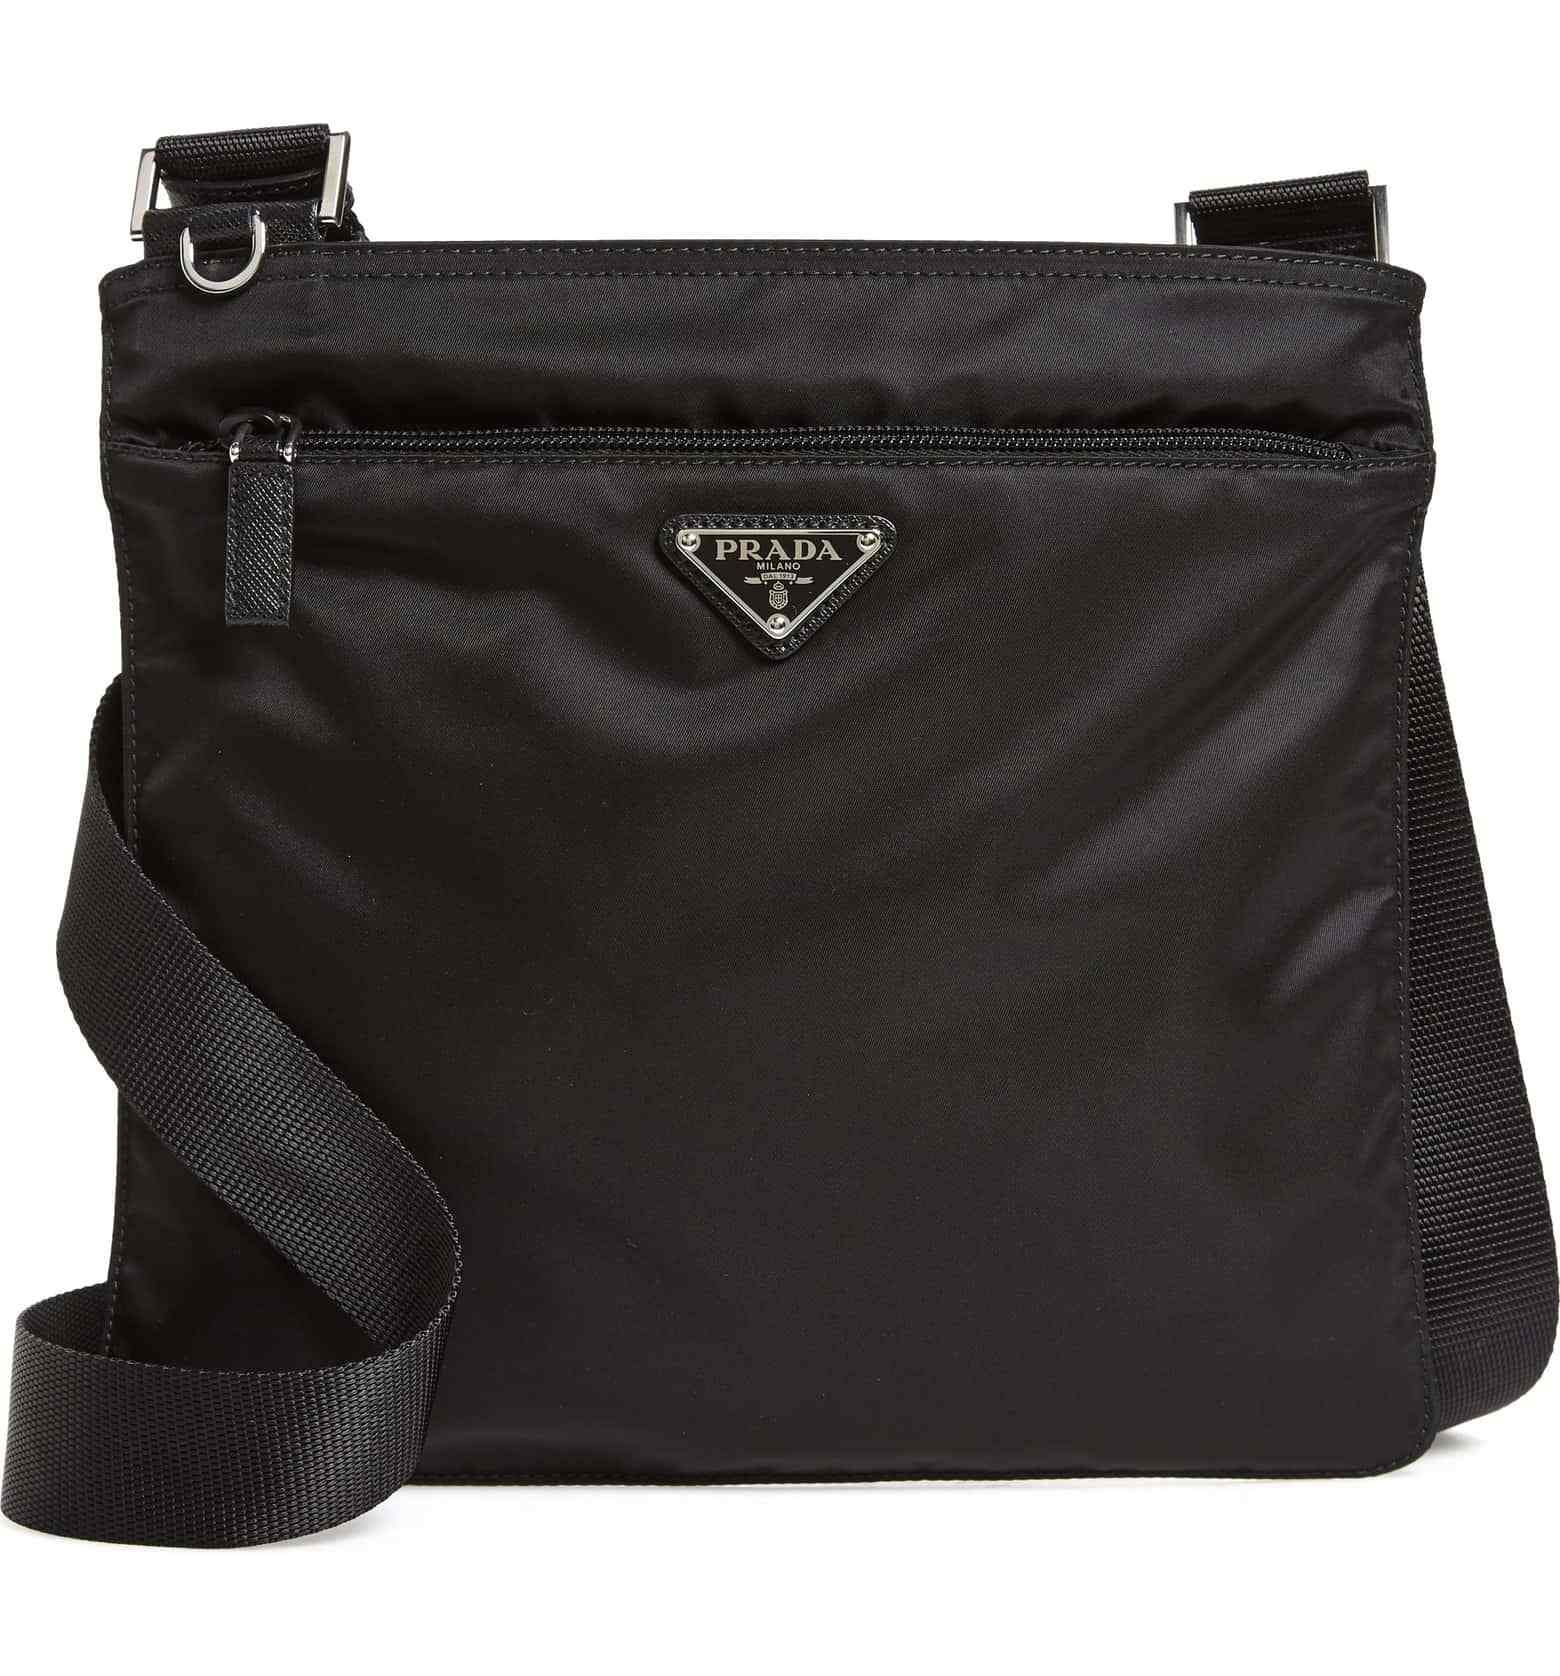 3b7276ea05 Amazing Prada Crossbody Bag Vela Flat Nylon with vintage feel.  prada   logobag  crossbody  bag  designer  bags  vintage  shopthelook  style ...